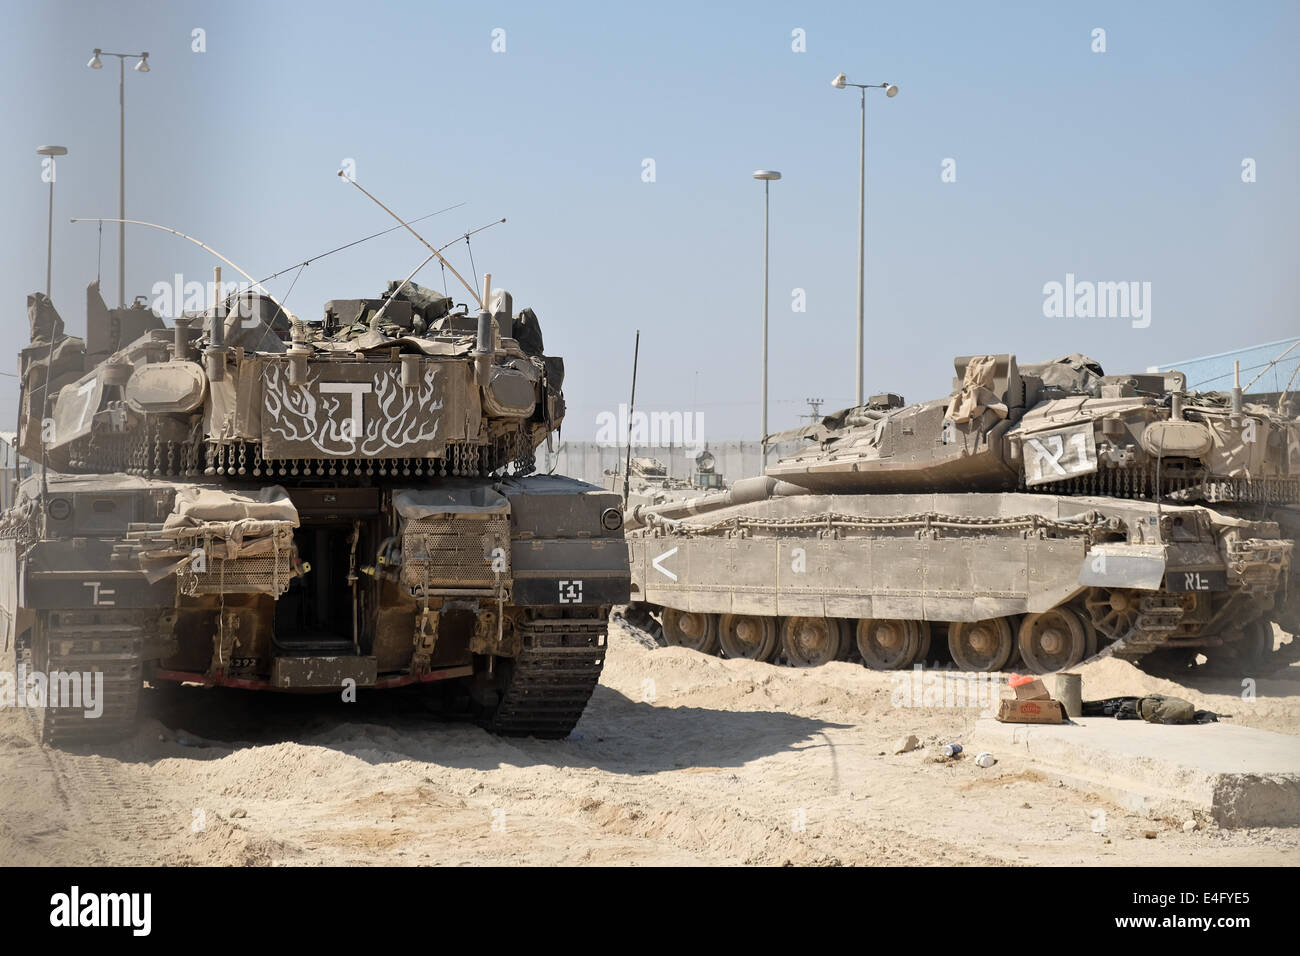 Sderot, Israel. 10th July, 2014. Israeli Merkava tanks are serviced at the Erez Crossing in preparation for an IDF - Stock Image